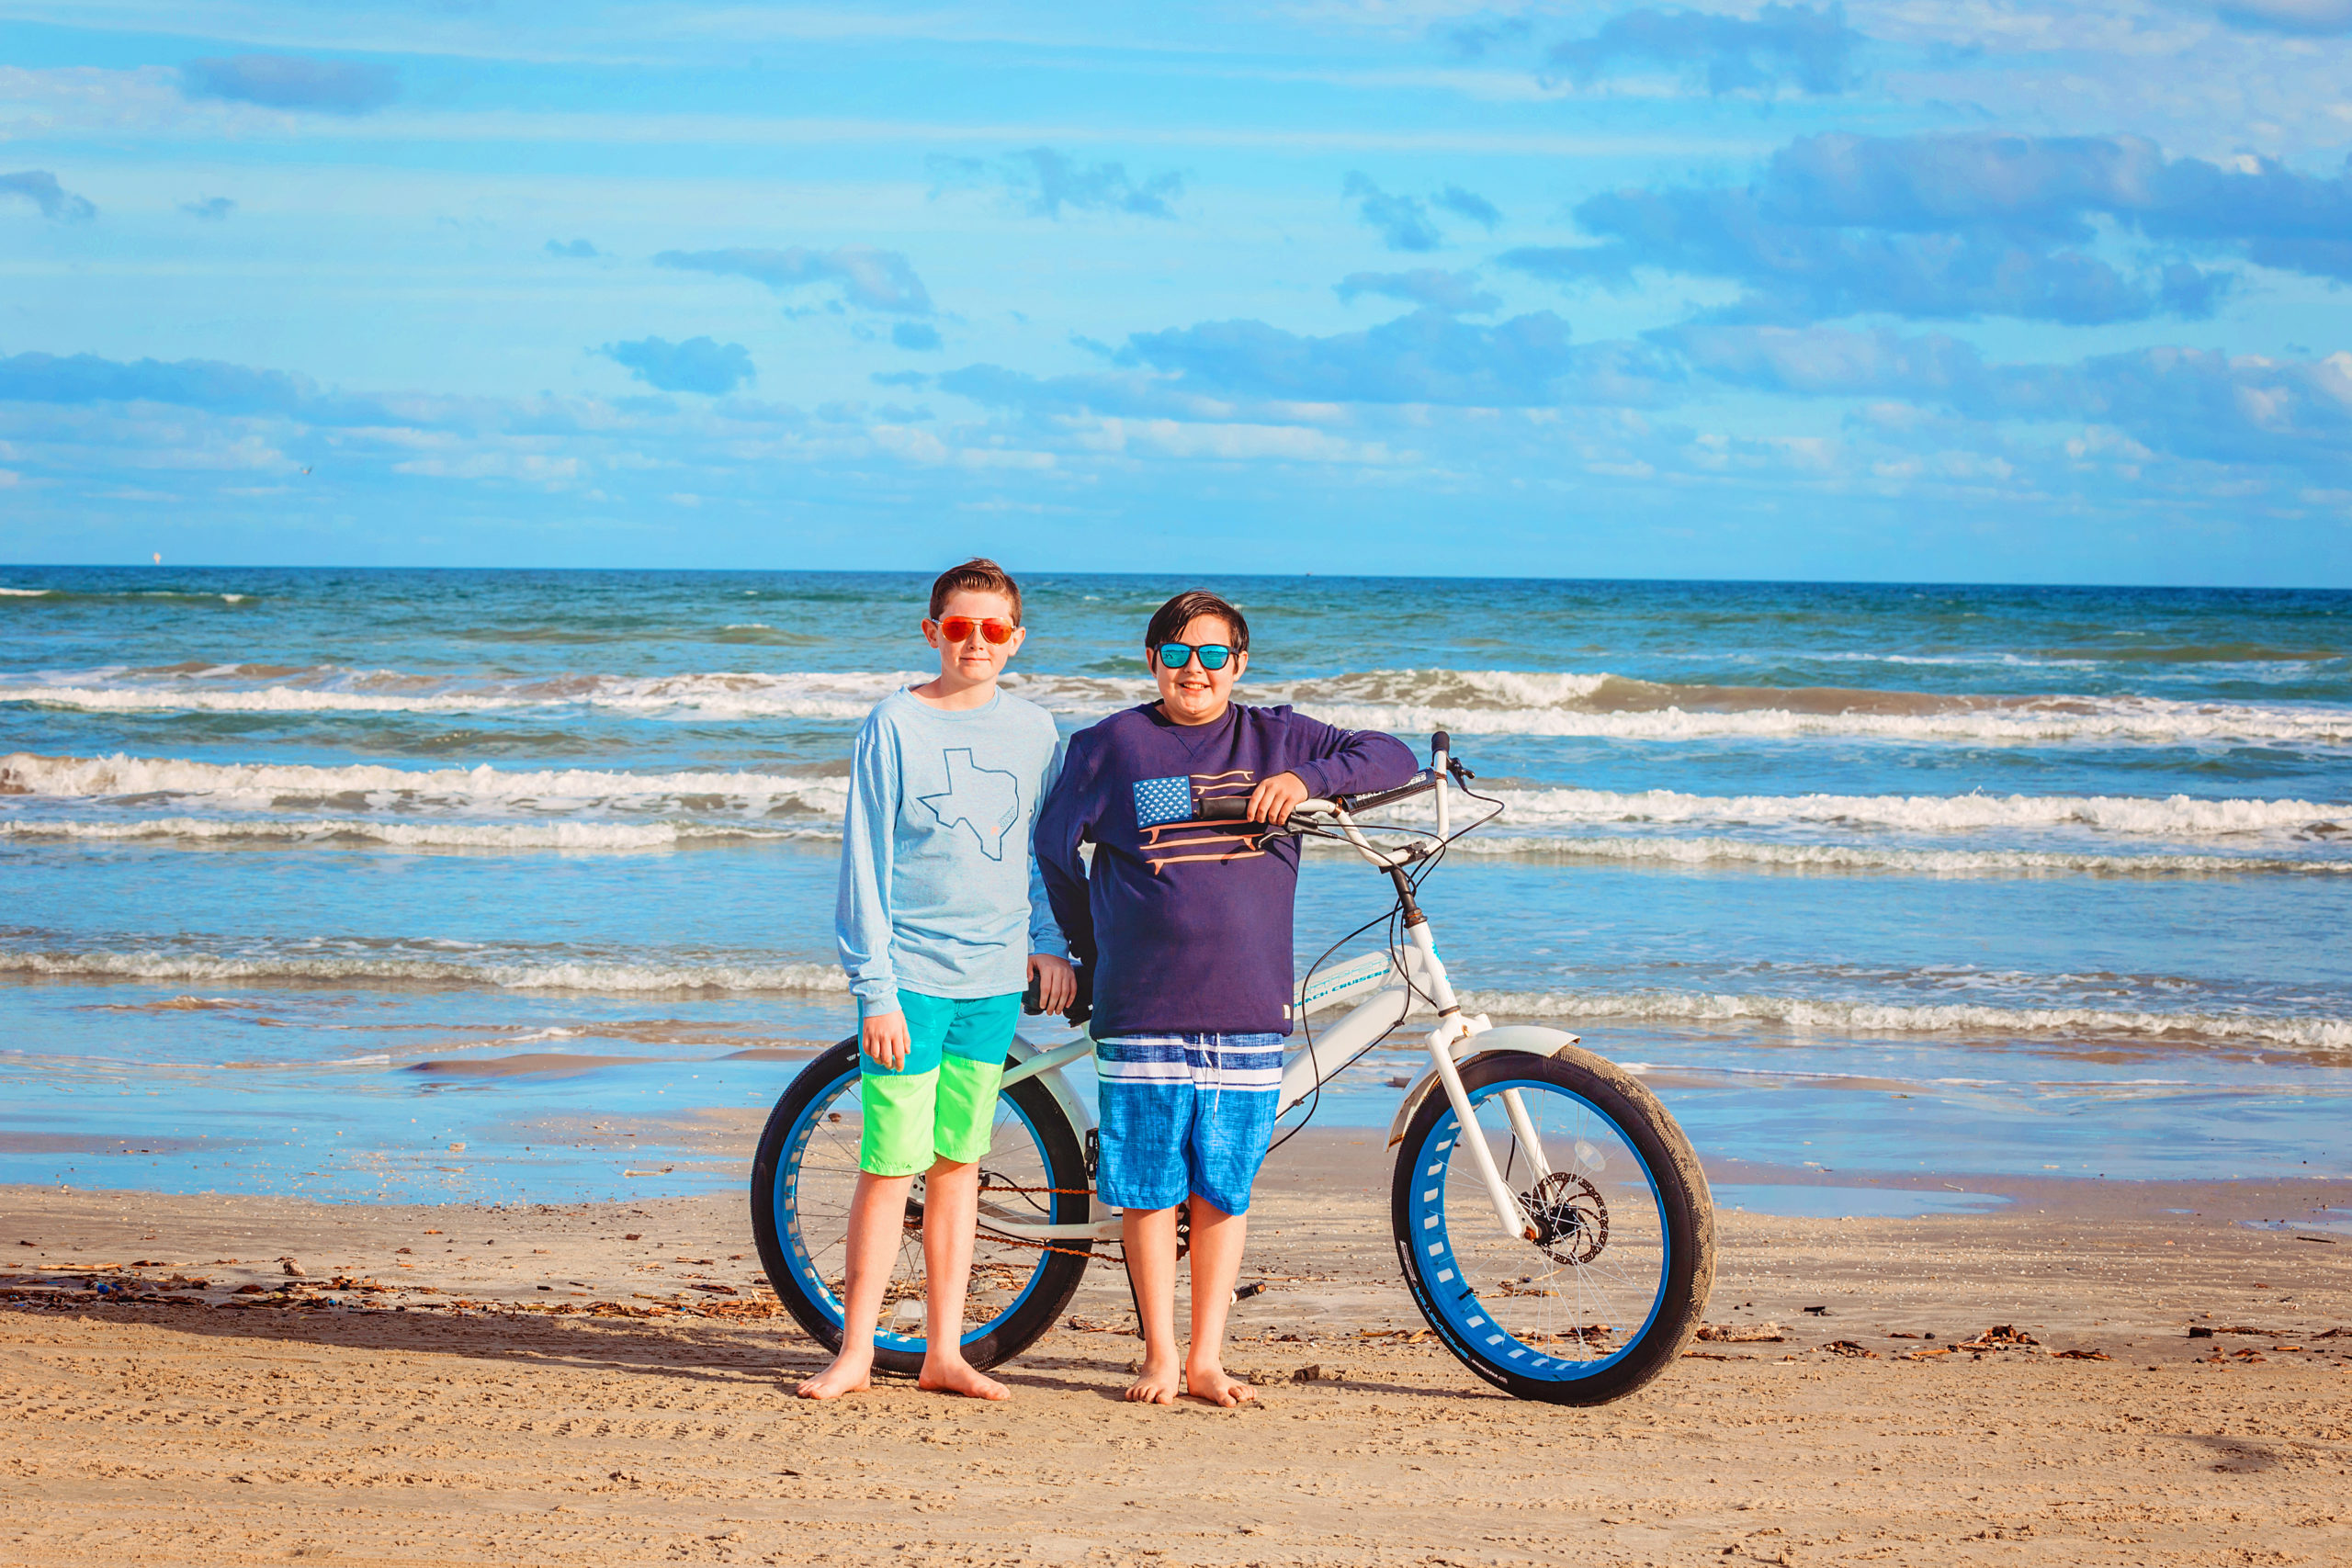 Keegan and Delsyn took part in some beach bike riding.